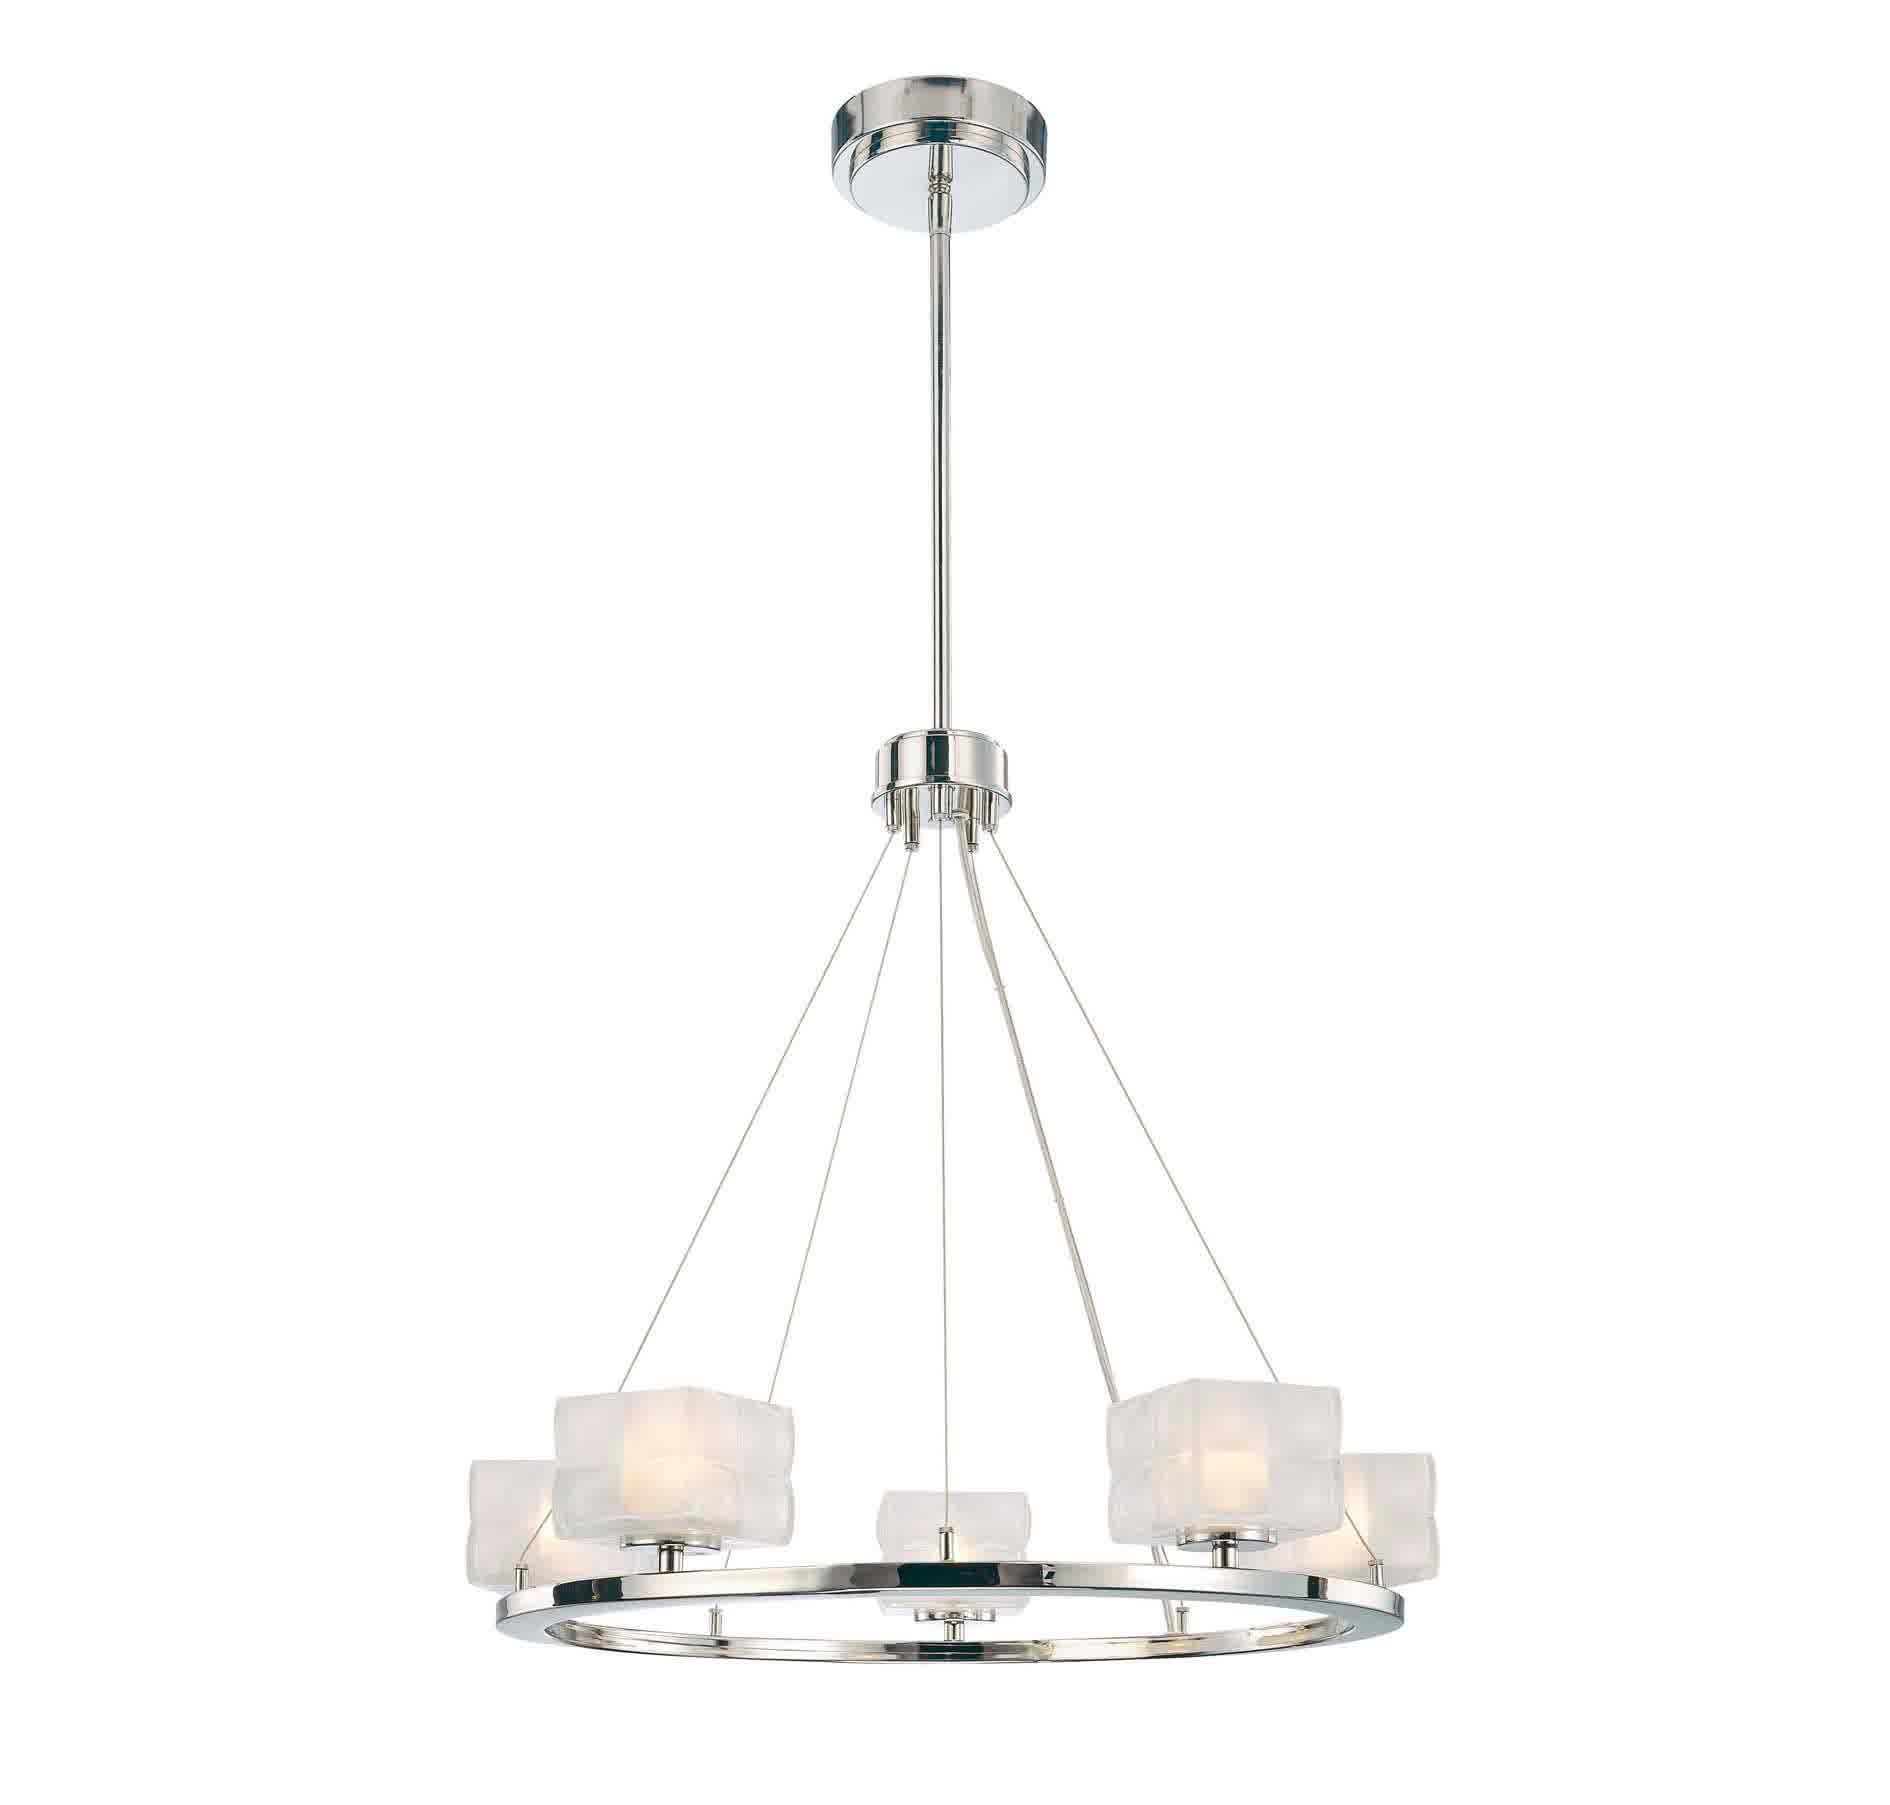 Stylish George Kovacs Lighting That Will Make Your Room Appear